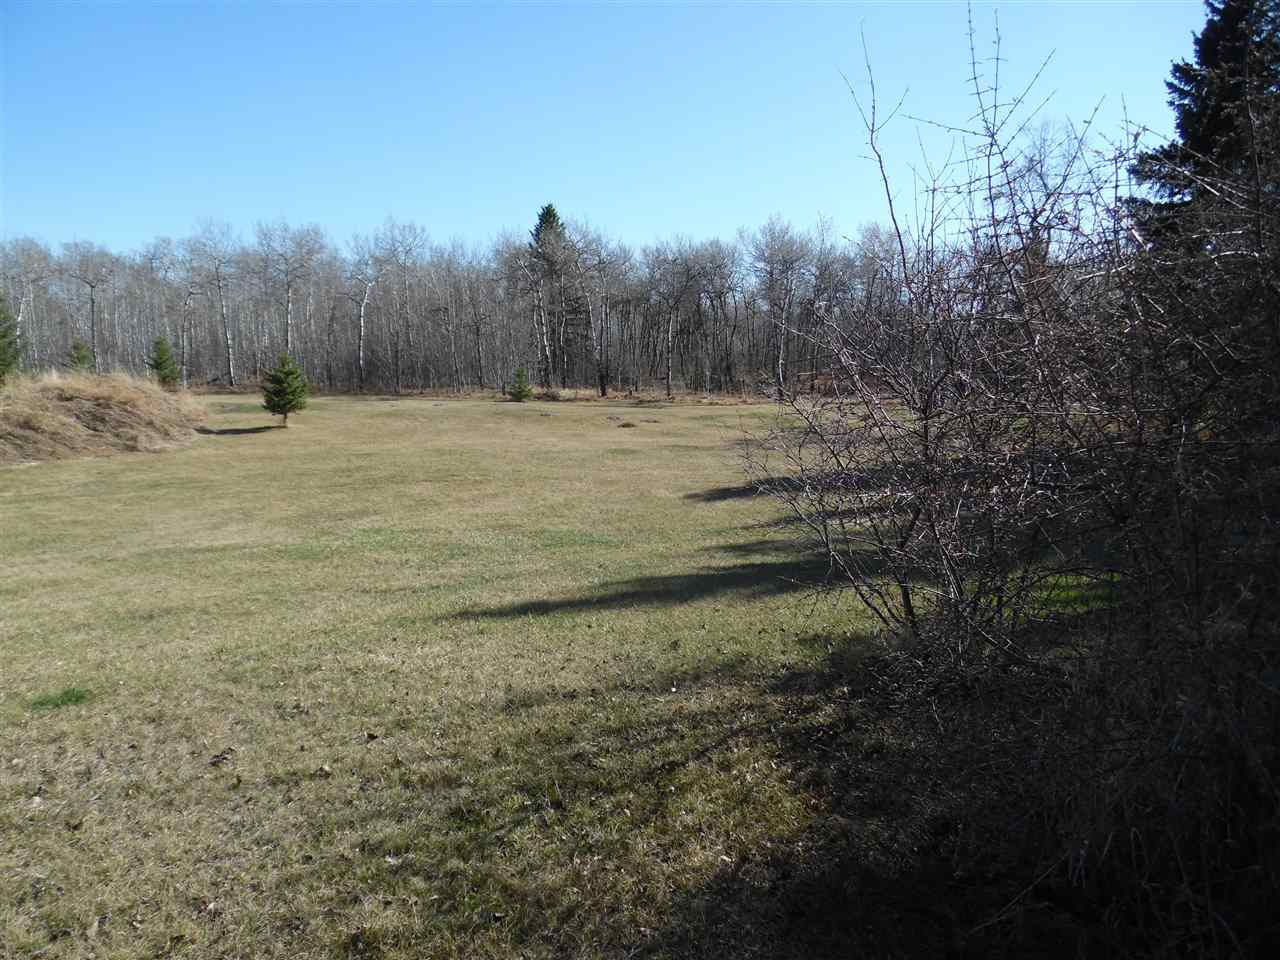 Nice Minburn lot of .347 acres or 15,130 sq ft which almost 3 times the size of most big city lots costing 10 x more!